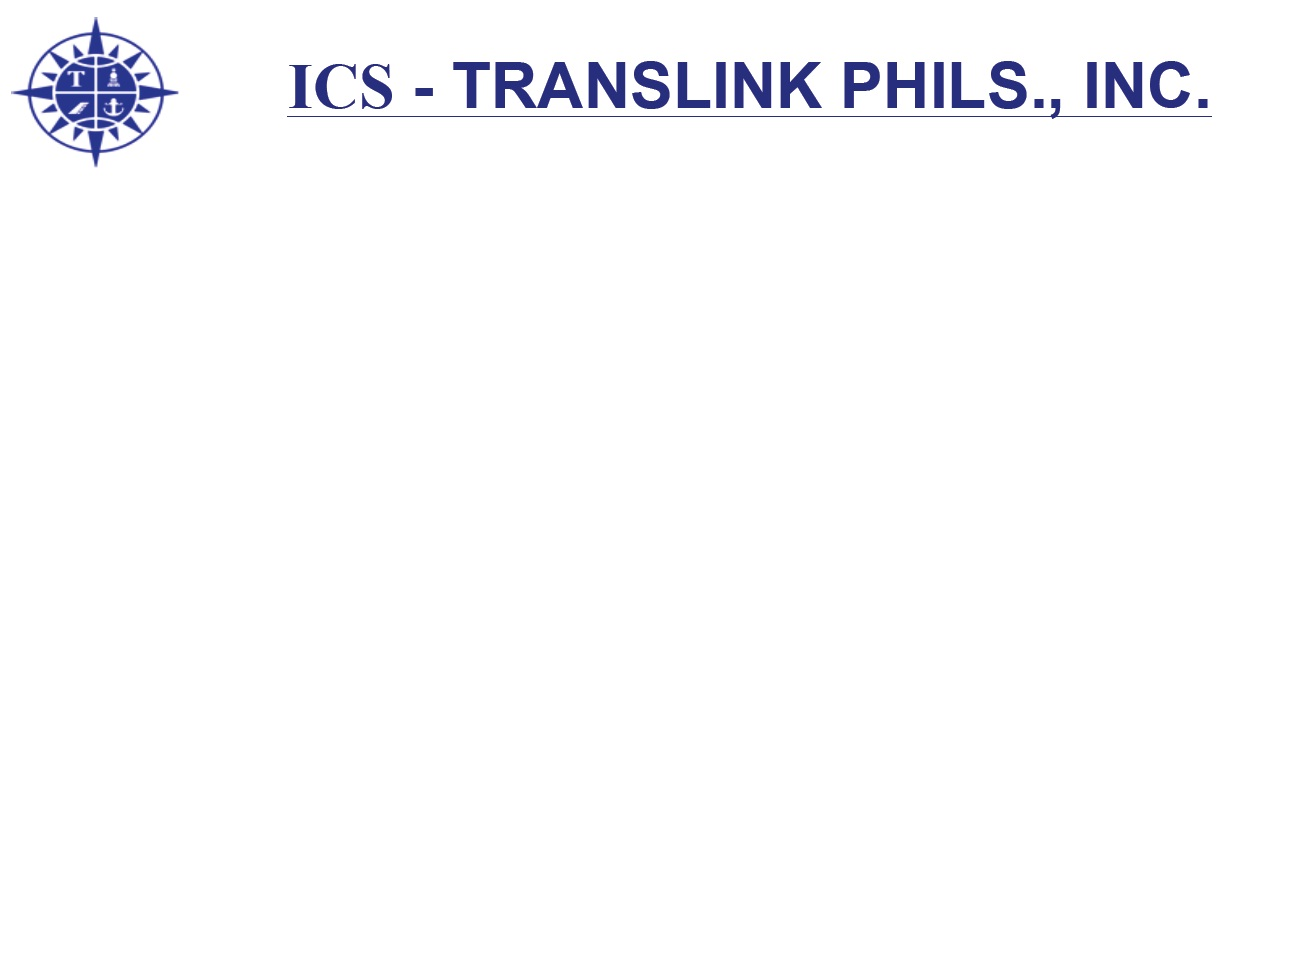 ICS-Translink (Phils.,) Inc.